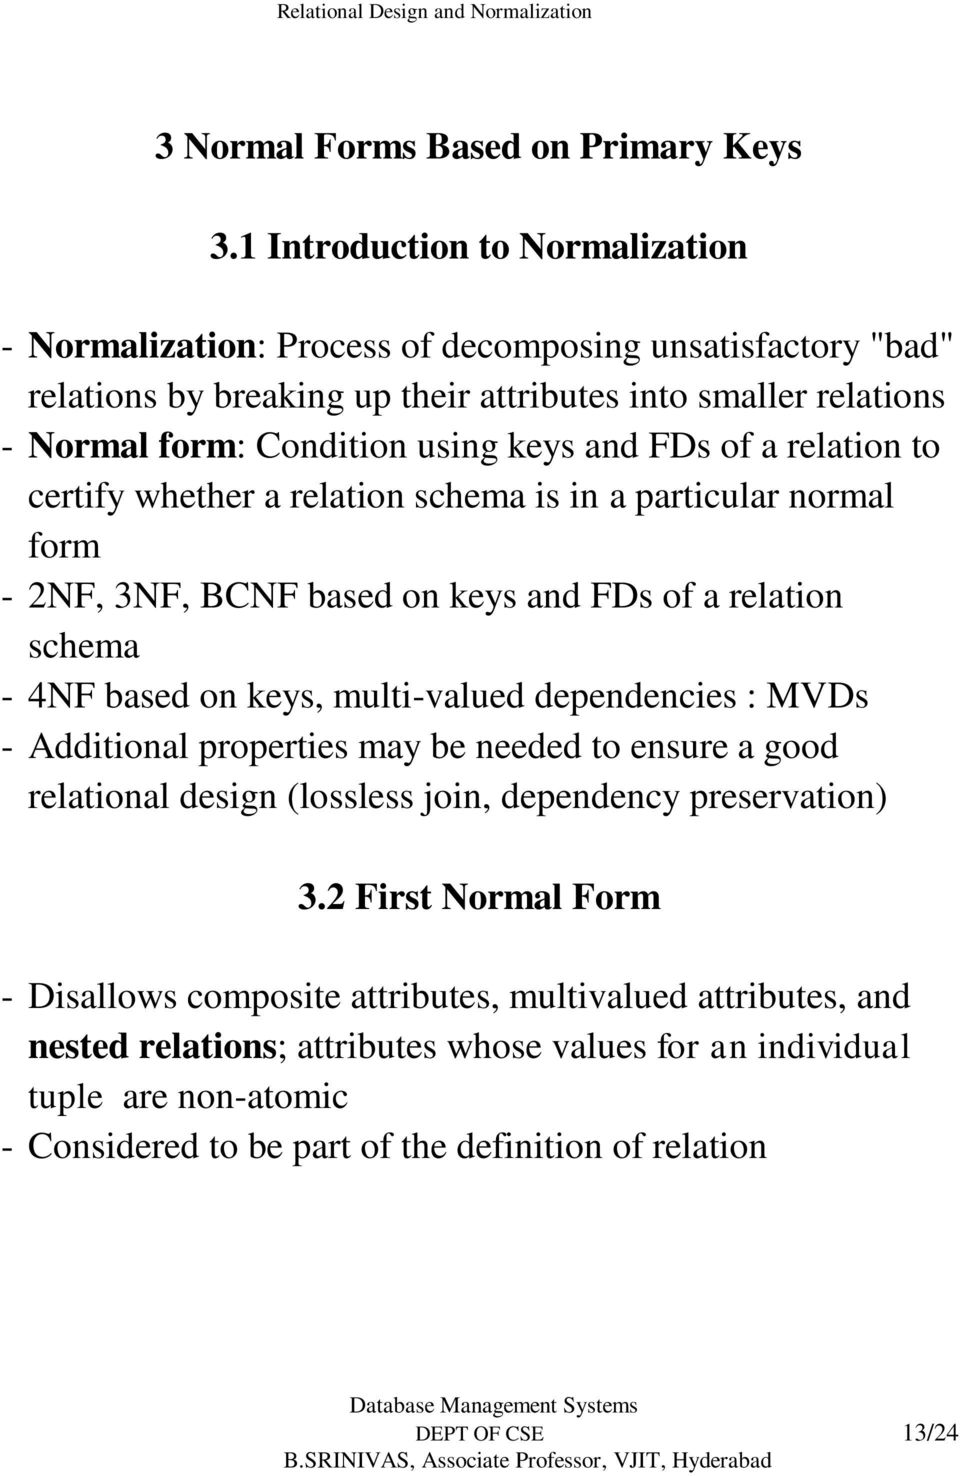 and FDs of a relation to certify whether a relation schema is in a particular normal form - 2NF, 3NF, BCNF based on keys and FDs of a relation schema - 4NF based on keys, multi-valued dependencies